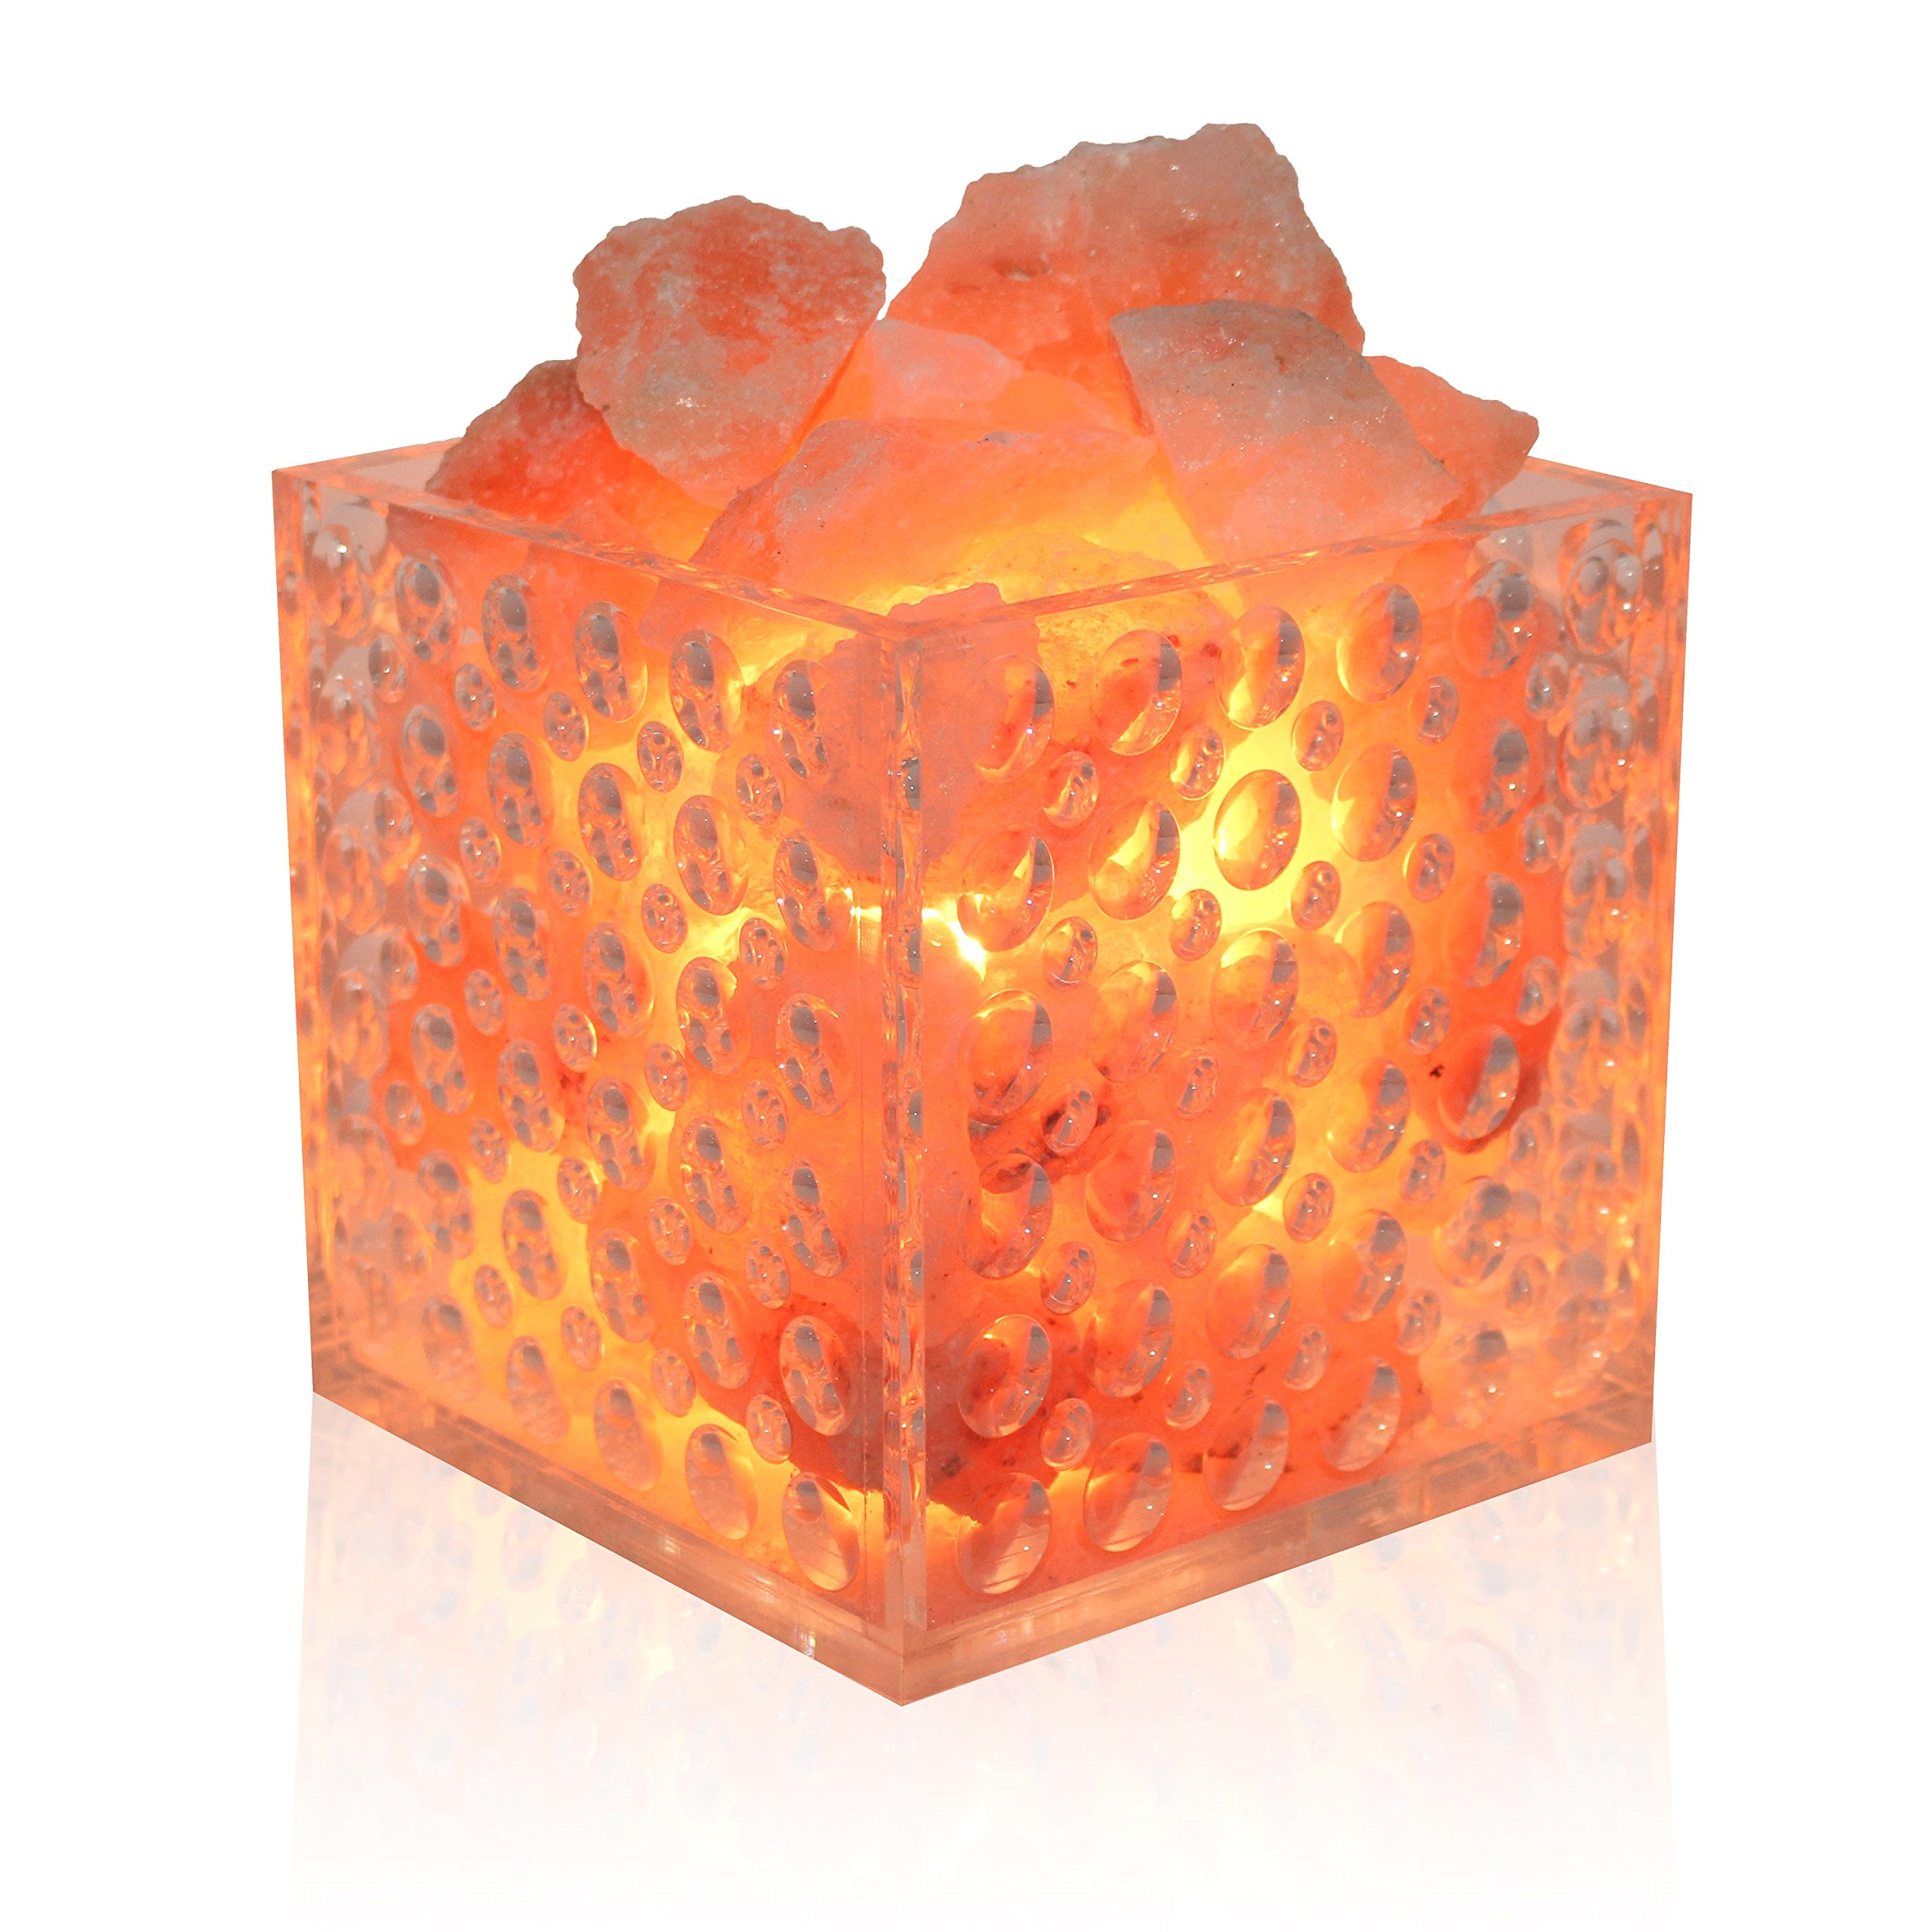 UMAID Pure Natural Himilian Himalayan Sea Rock Salt Lamp (Spa Style). With Pink Salt Massage Crystals in a Modern Acrylic Basket Salt Lamp 2 Bulbs, UL-Approved Accurate Dimmer Cord.